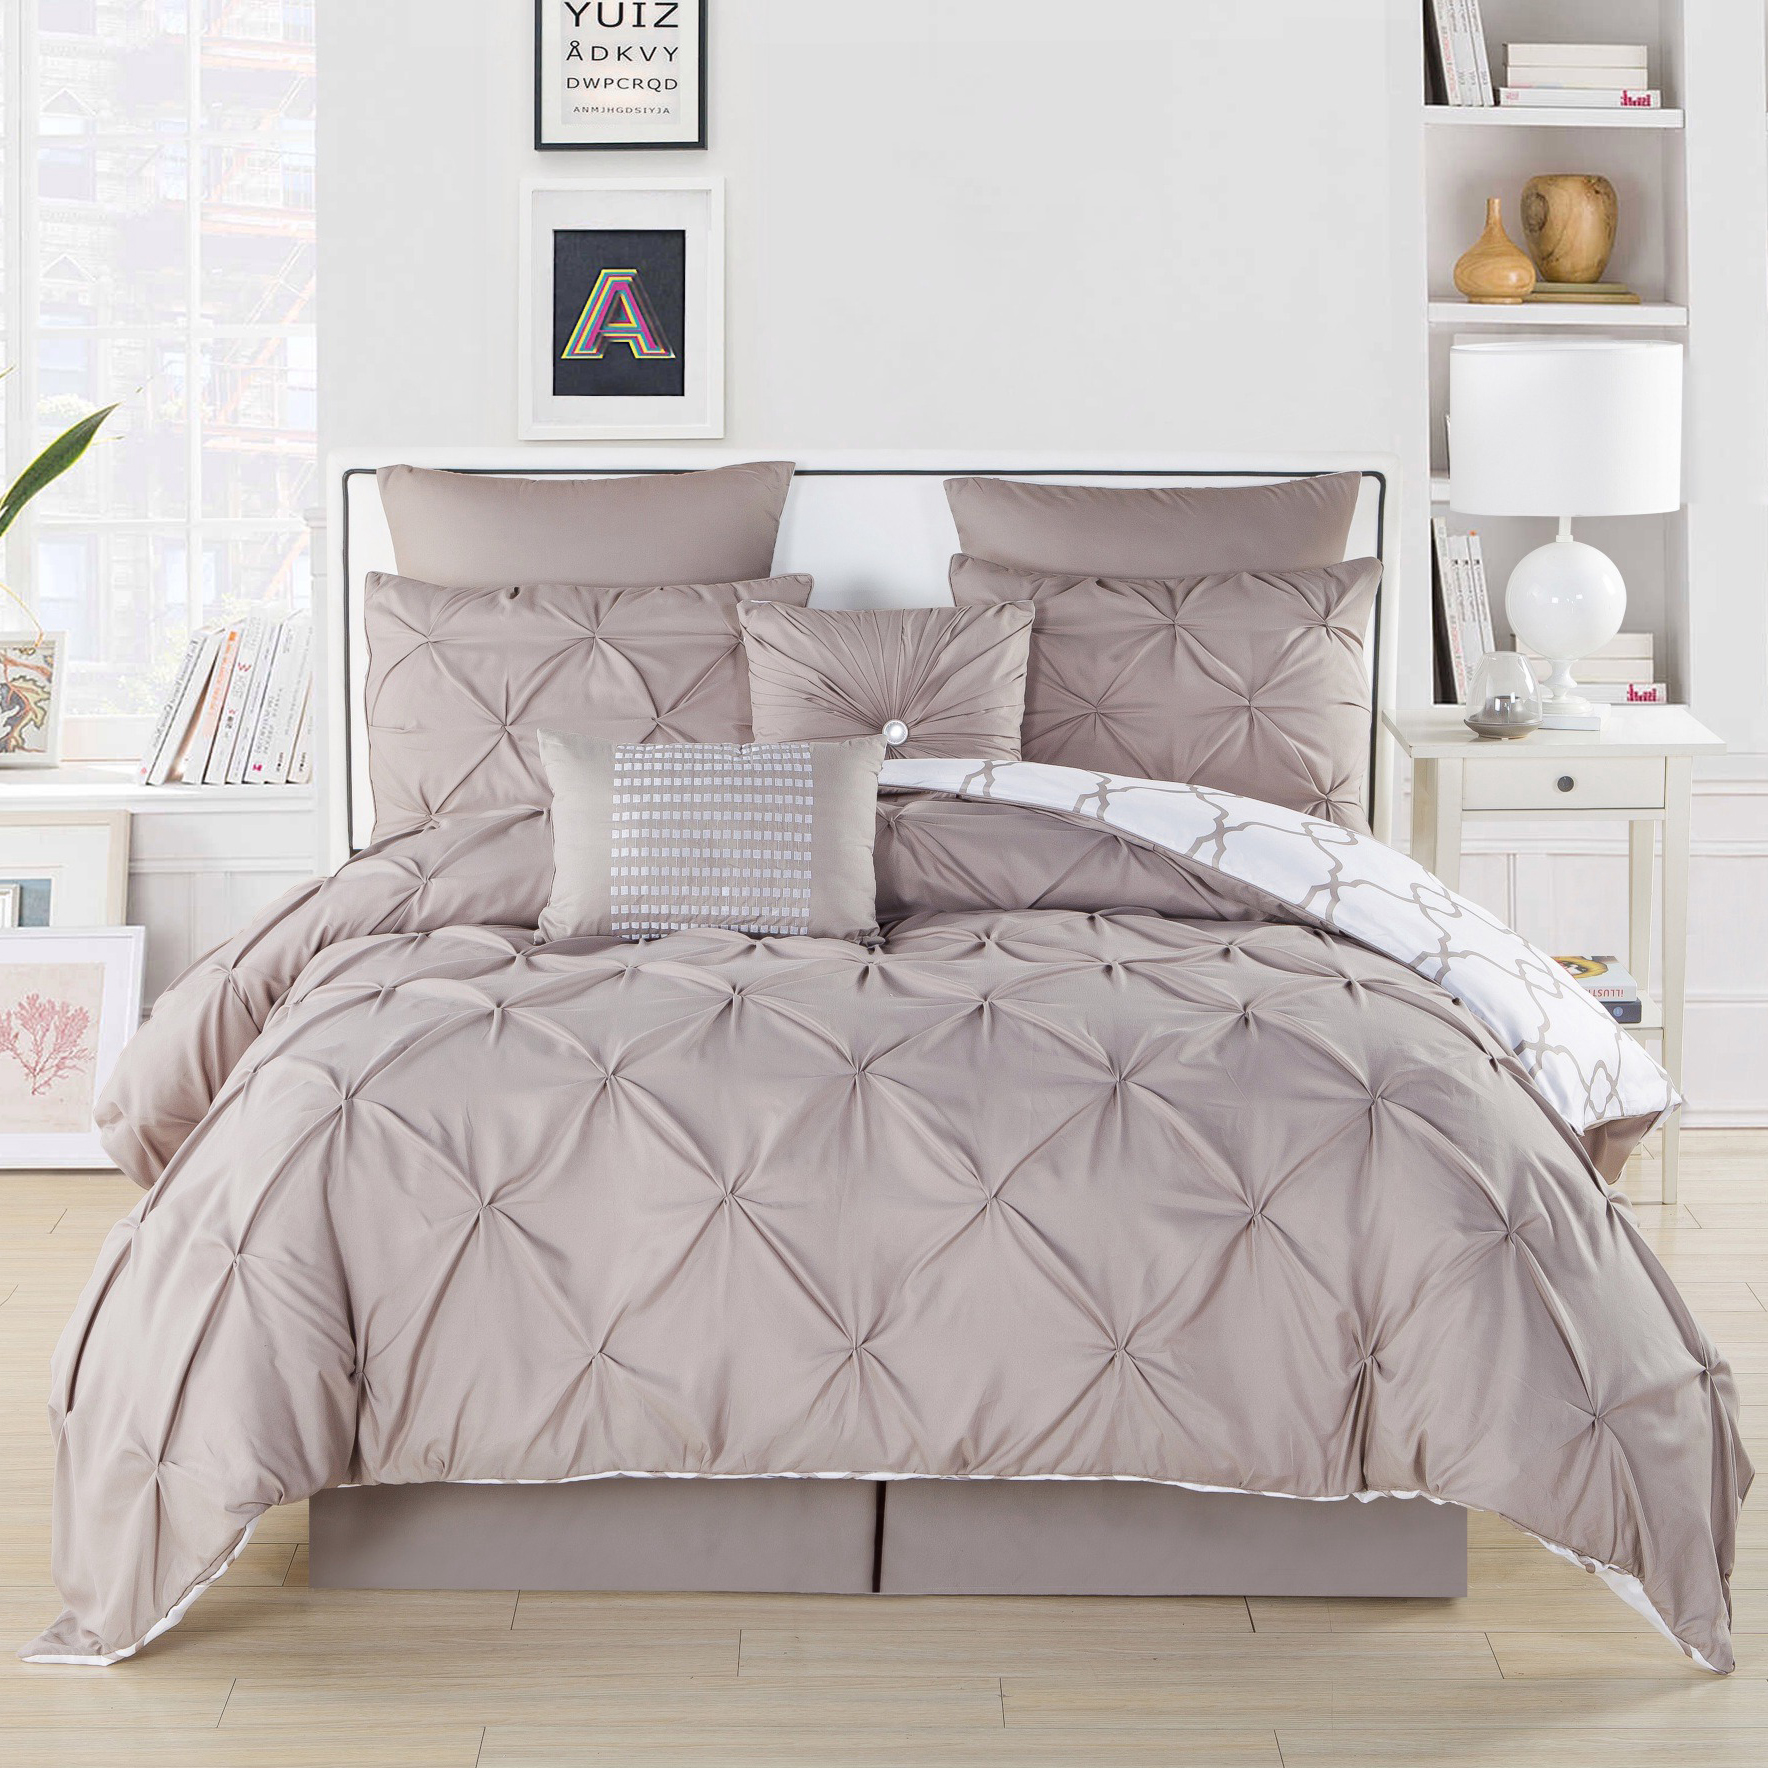 Ruthy s Textile 3-Piece Pintuck Printed Reversible Duvet Cover Set